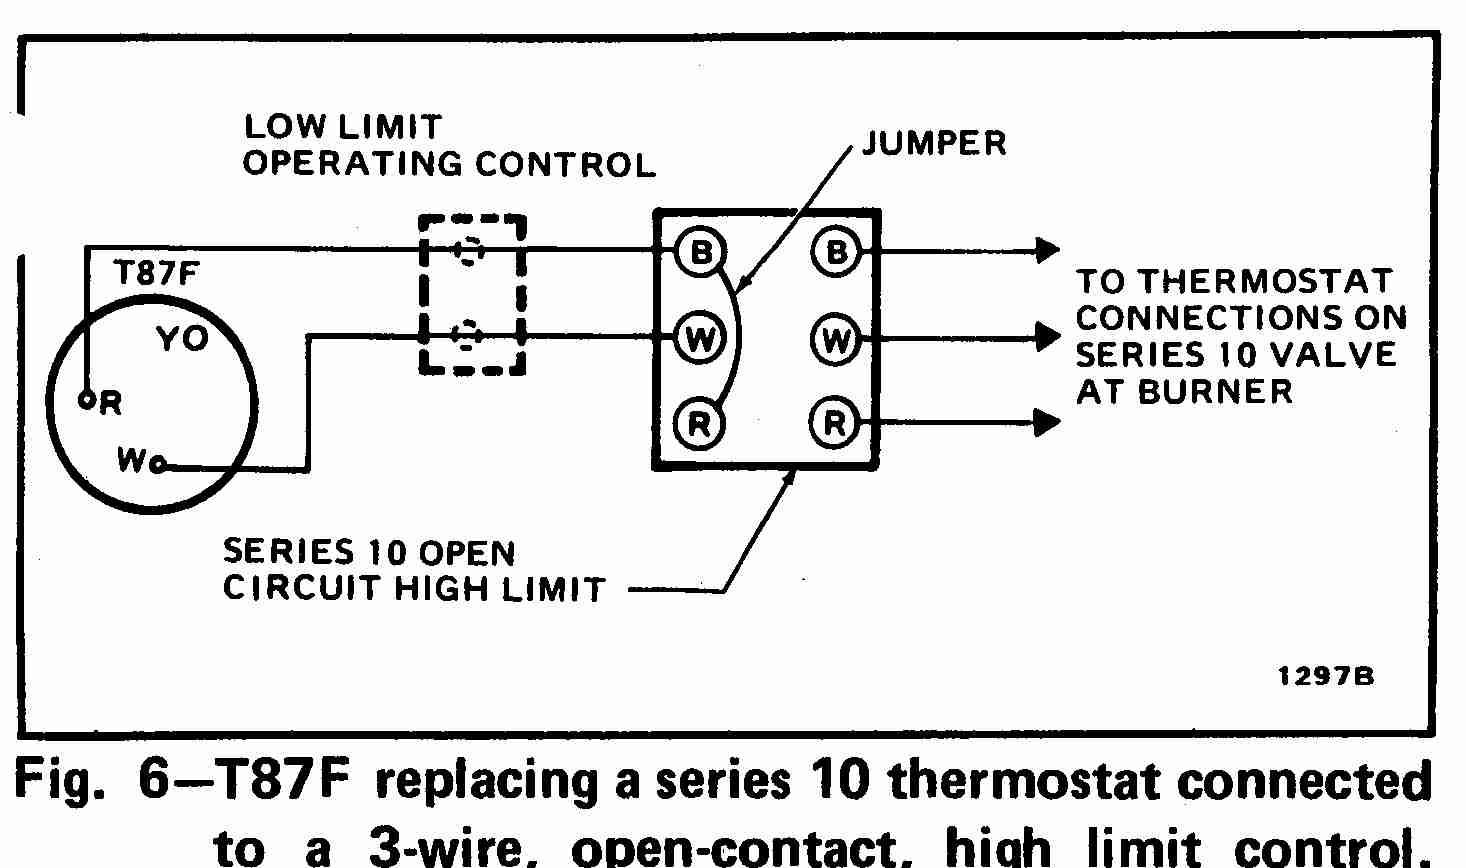 room thermostat wiring diagrams for hvac systems rh inspectapedia com wiring diagram for electric heater thermostat wiring diagram for electric baseboard heater with thermostat